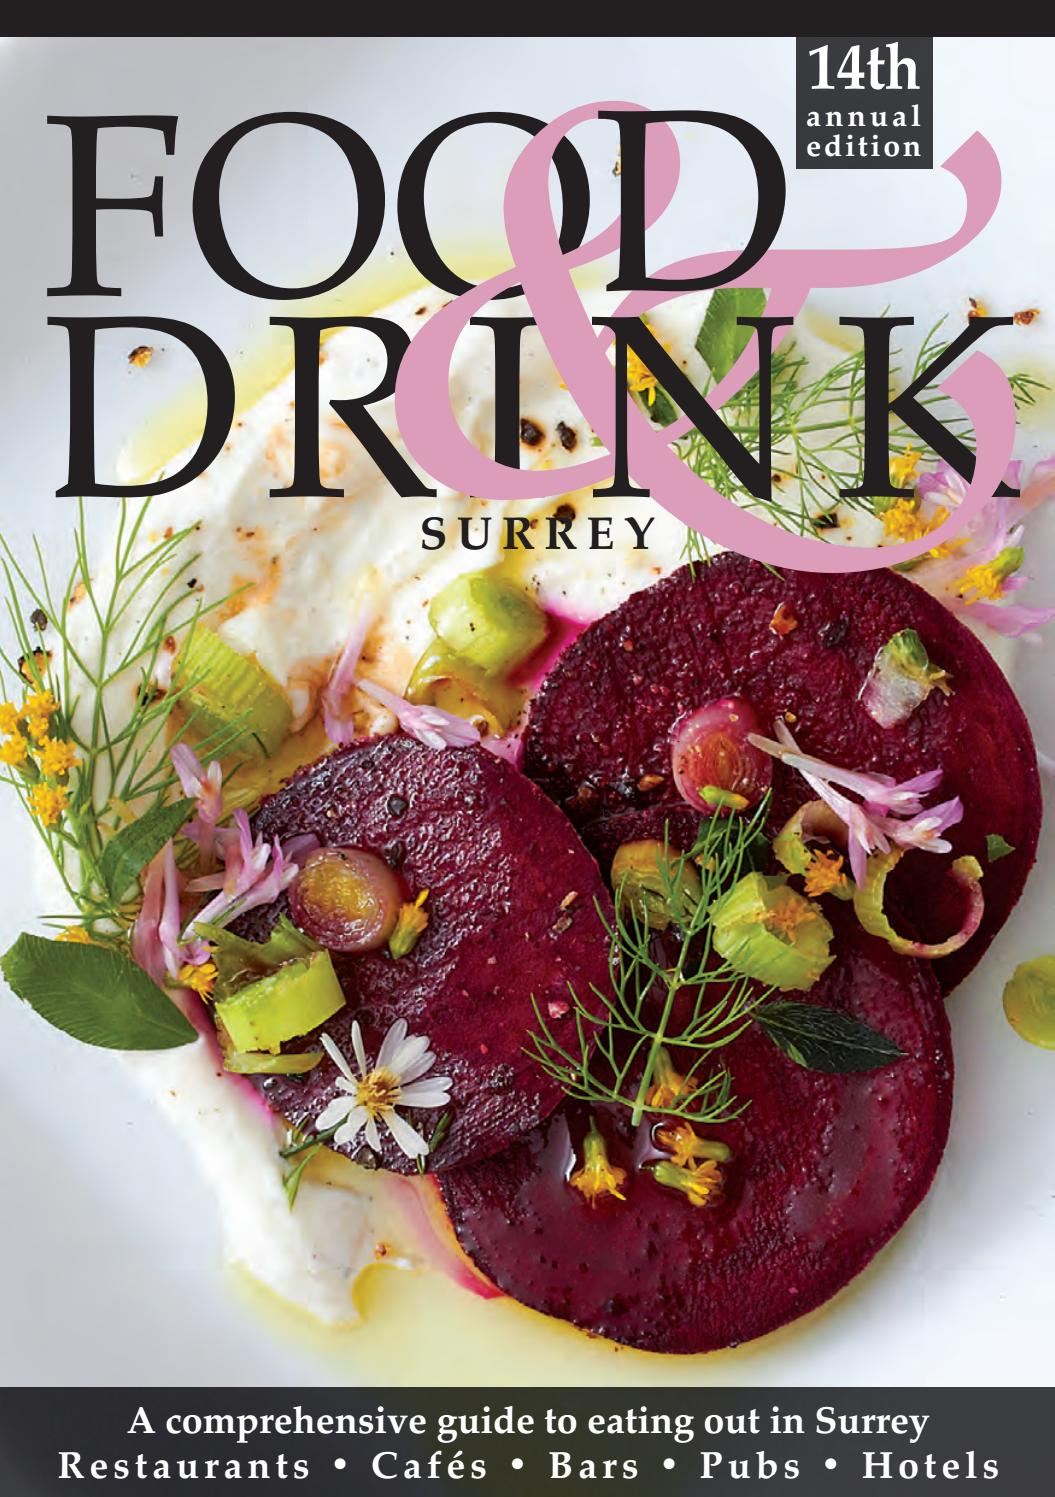 Surrey Food Drink Guide 2019 By Food Drink Guides Issuu